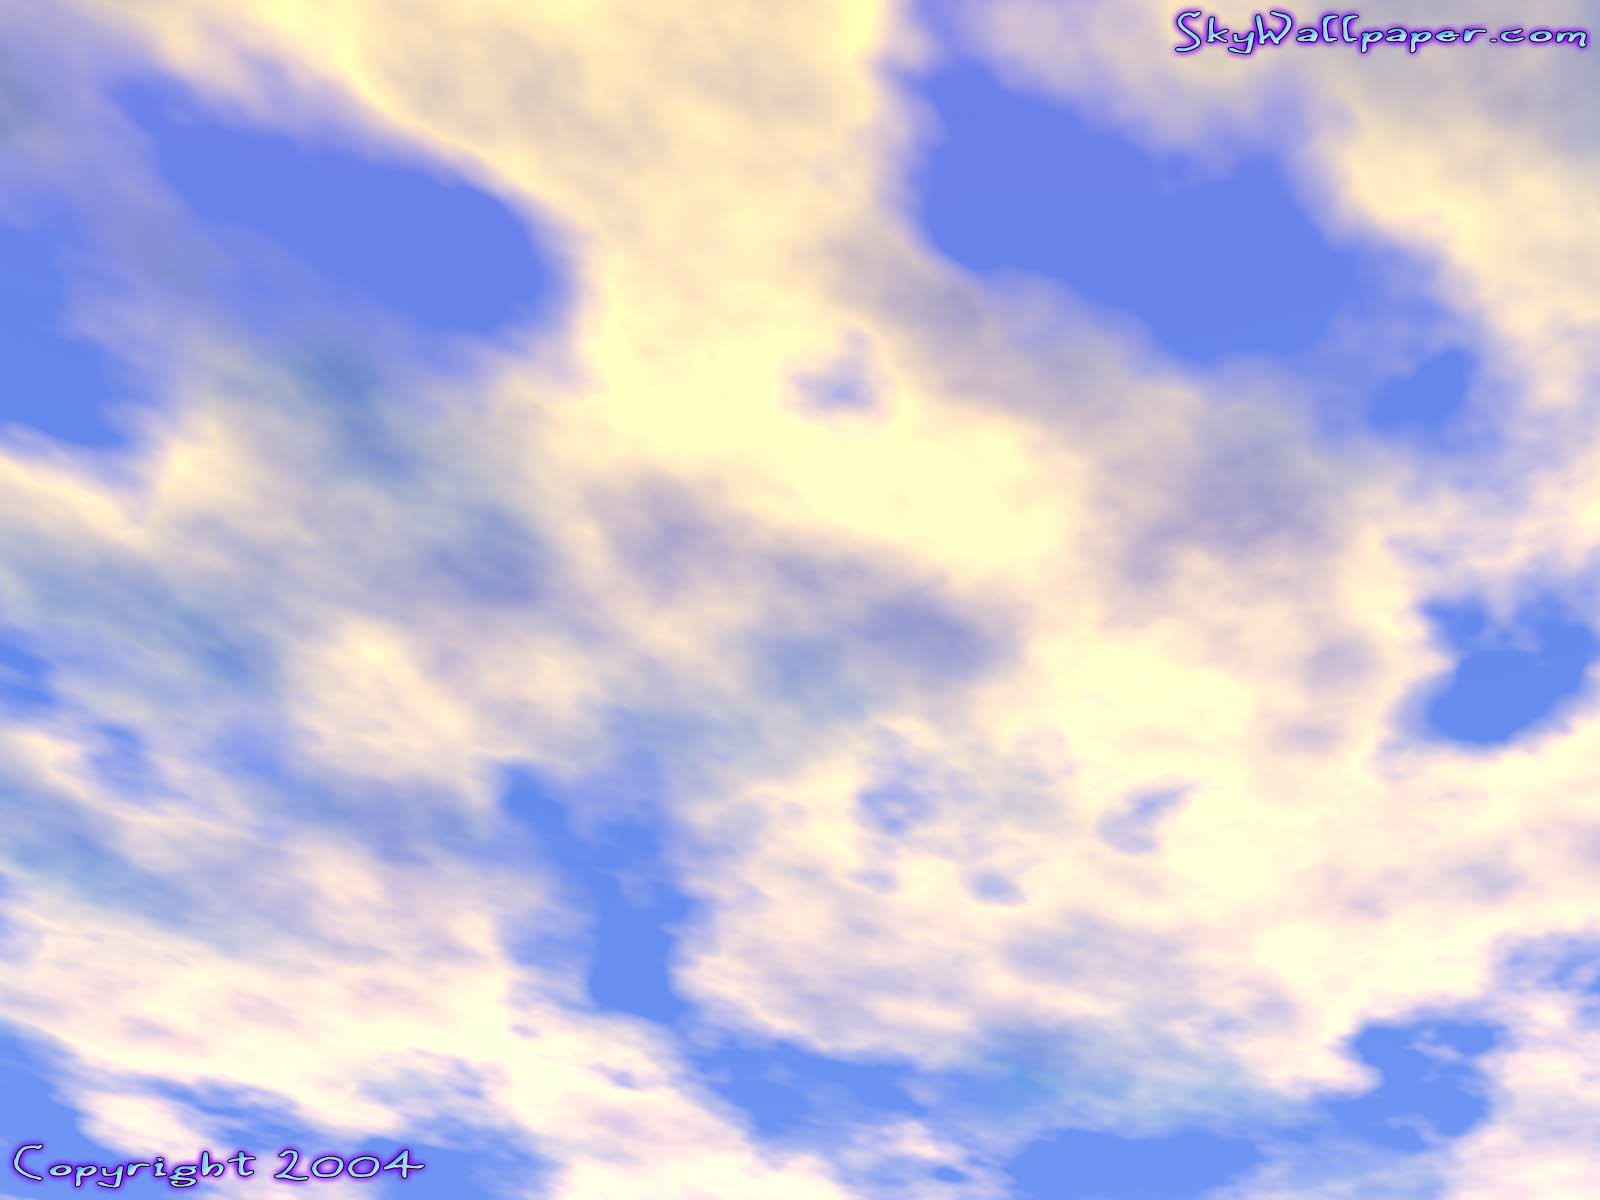 """Digital Sky Wallpaper Image"" - Wallpaper No. 91 of 109. Right click for saving options."